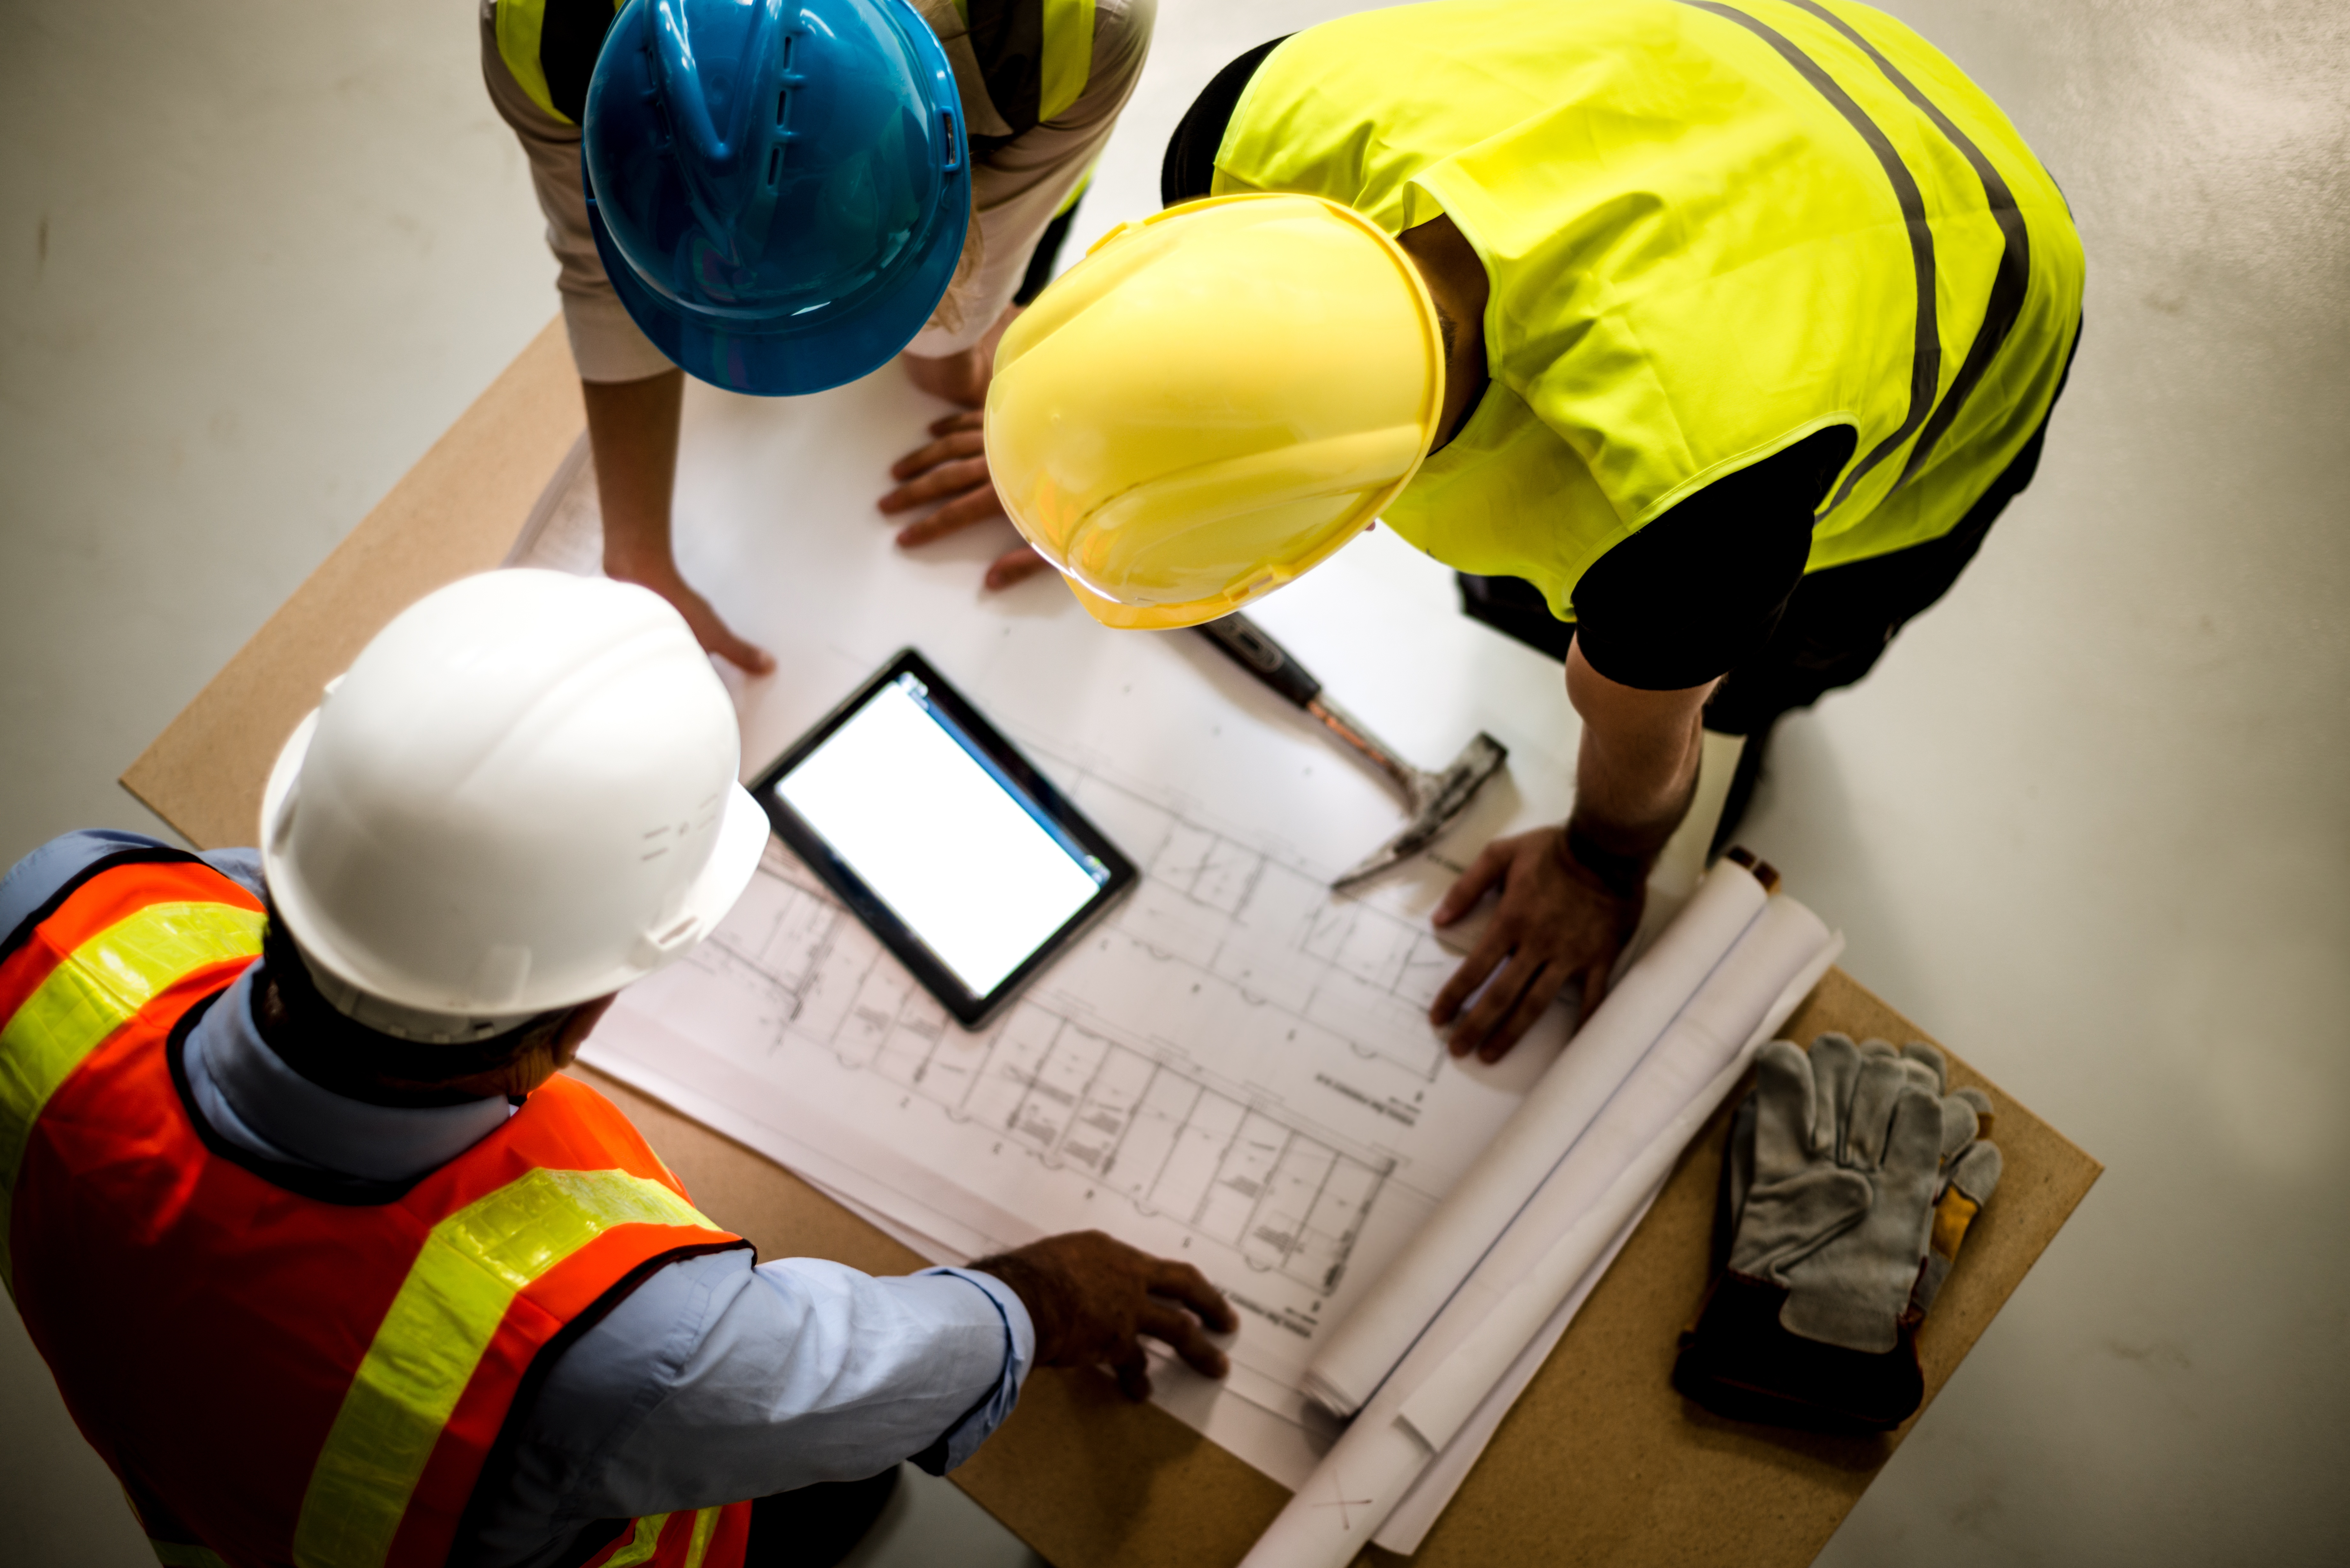 Making email work better for construction projects